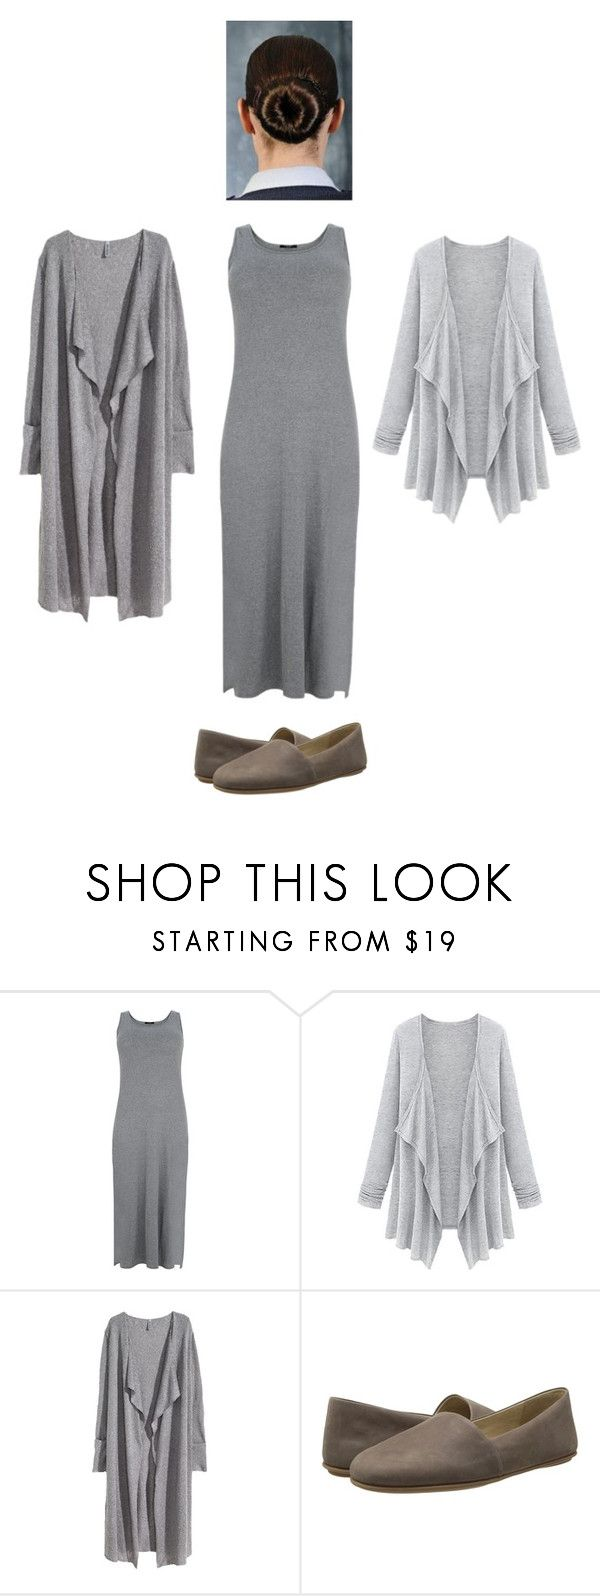 """""""Beatrice Prior cosplay"""" by cosplay23 ❤ liked on Polyvore featuring H&M, ECCO, divergent, cosplay, abnegation and tris"""